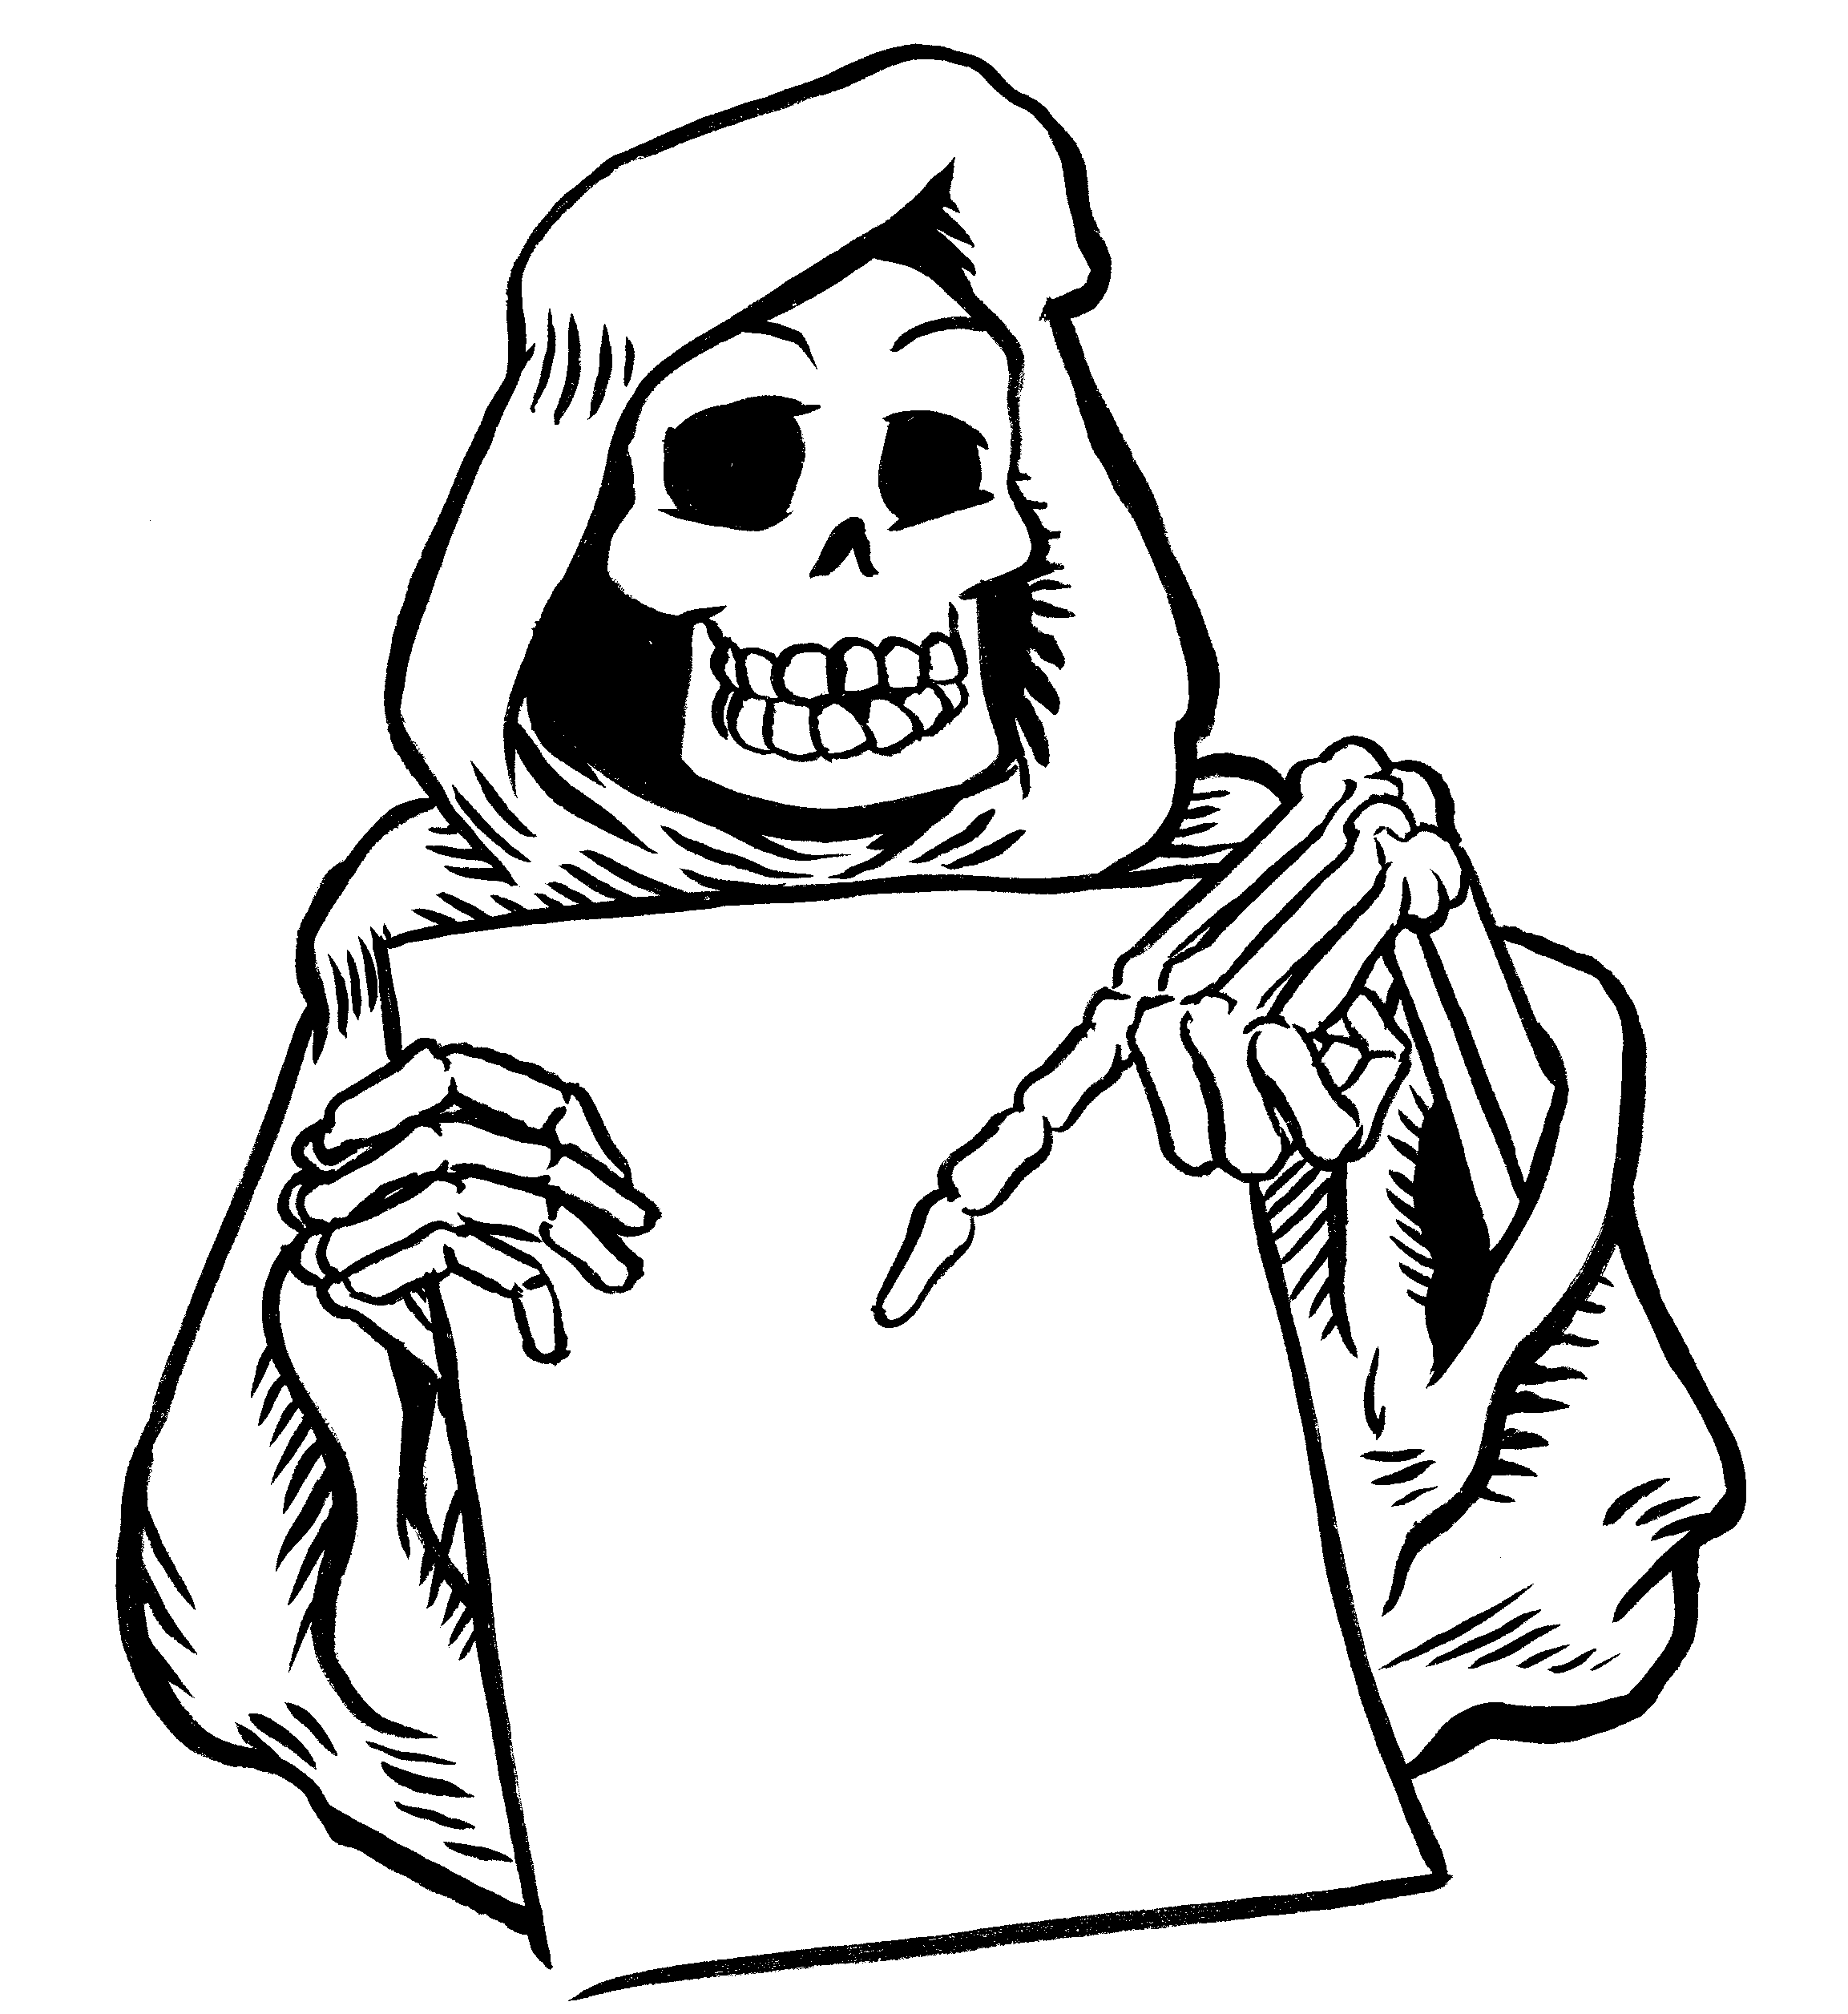 Halloween Coloring Pages To Print For Free